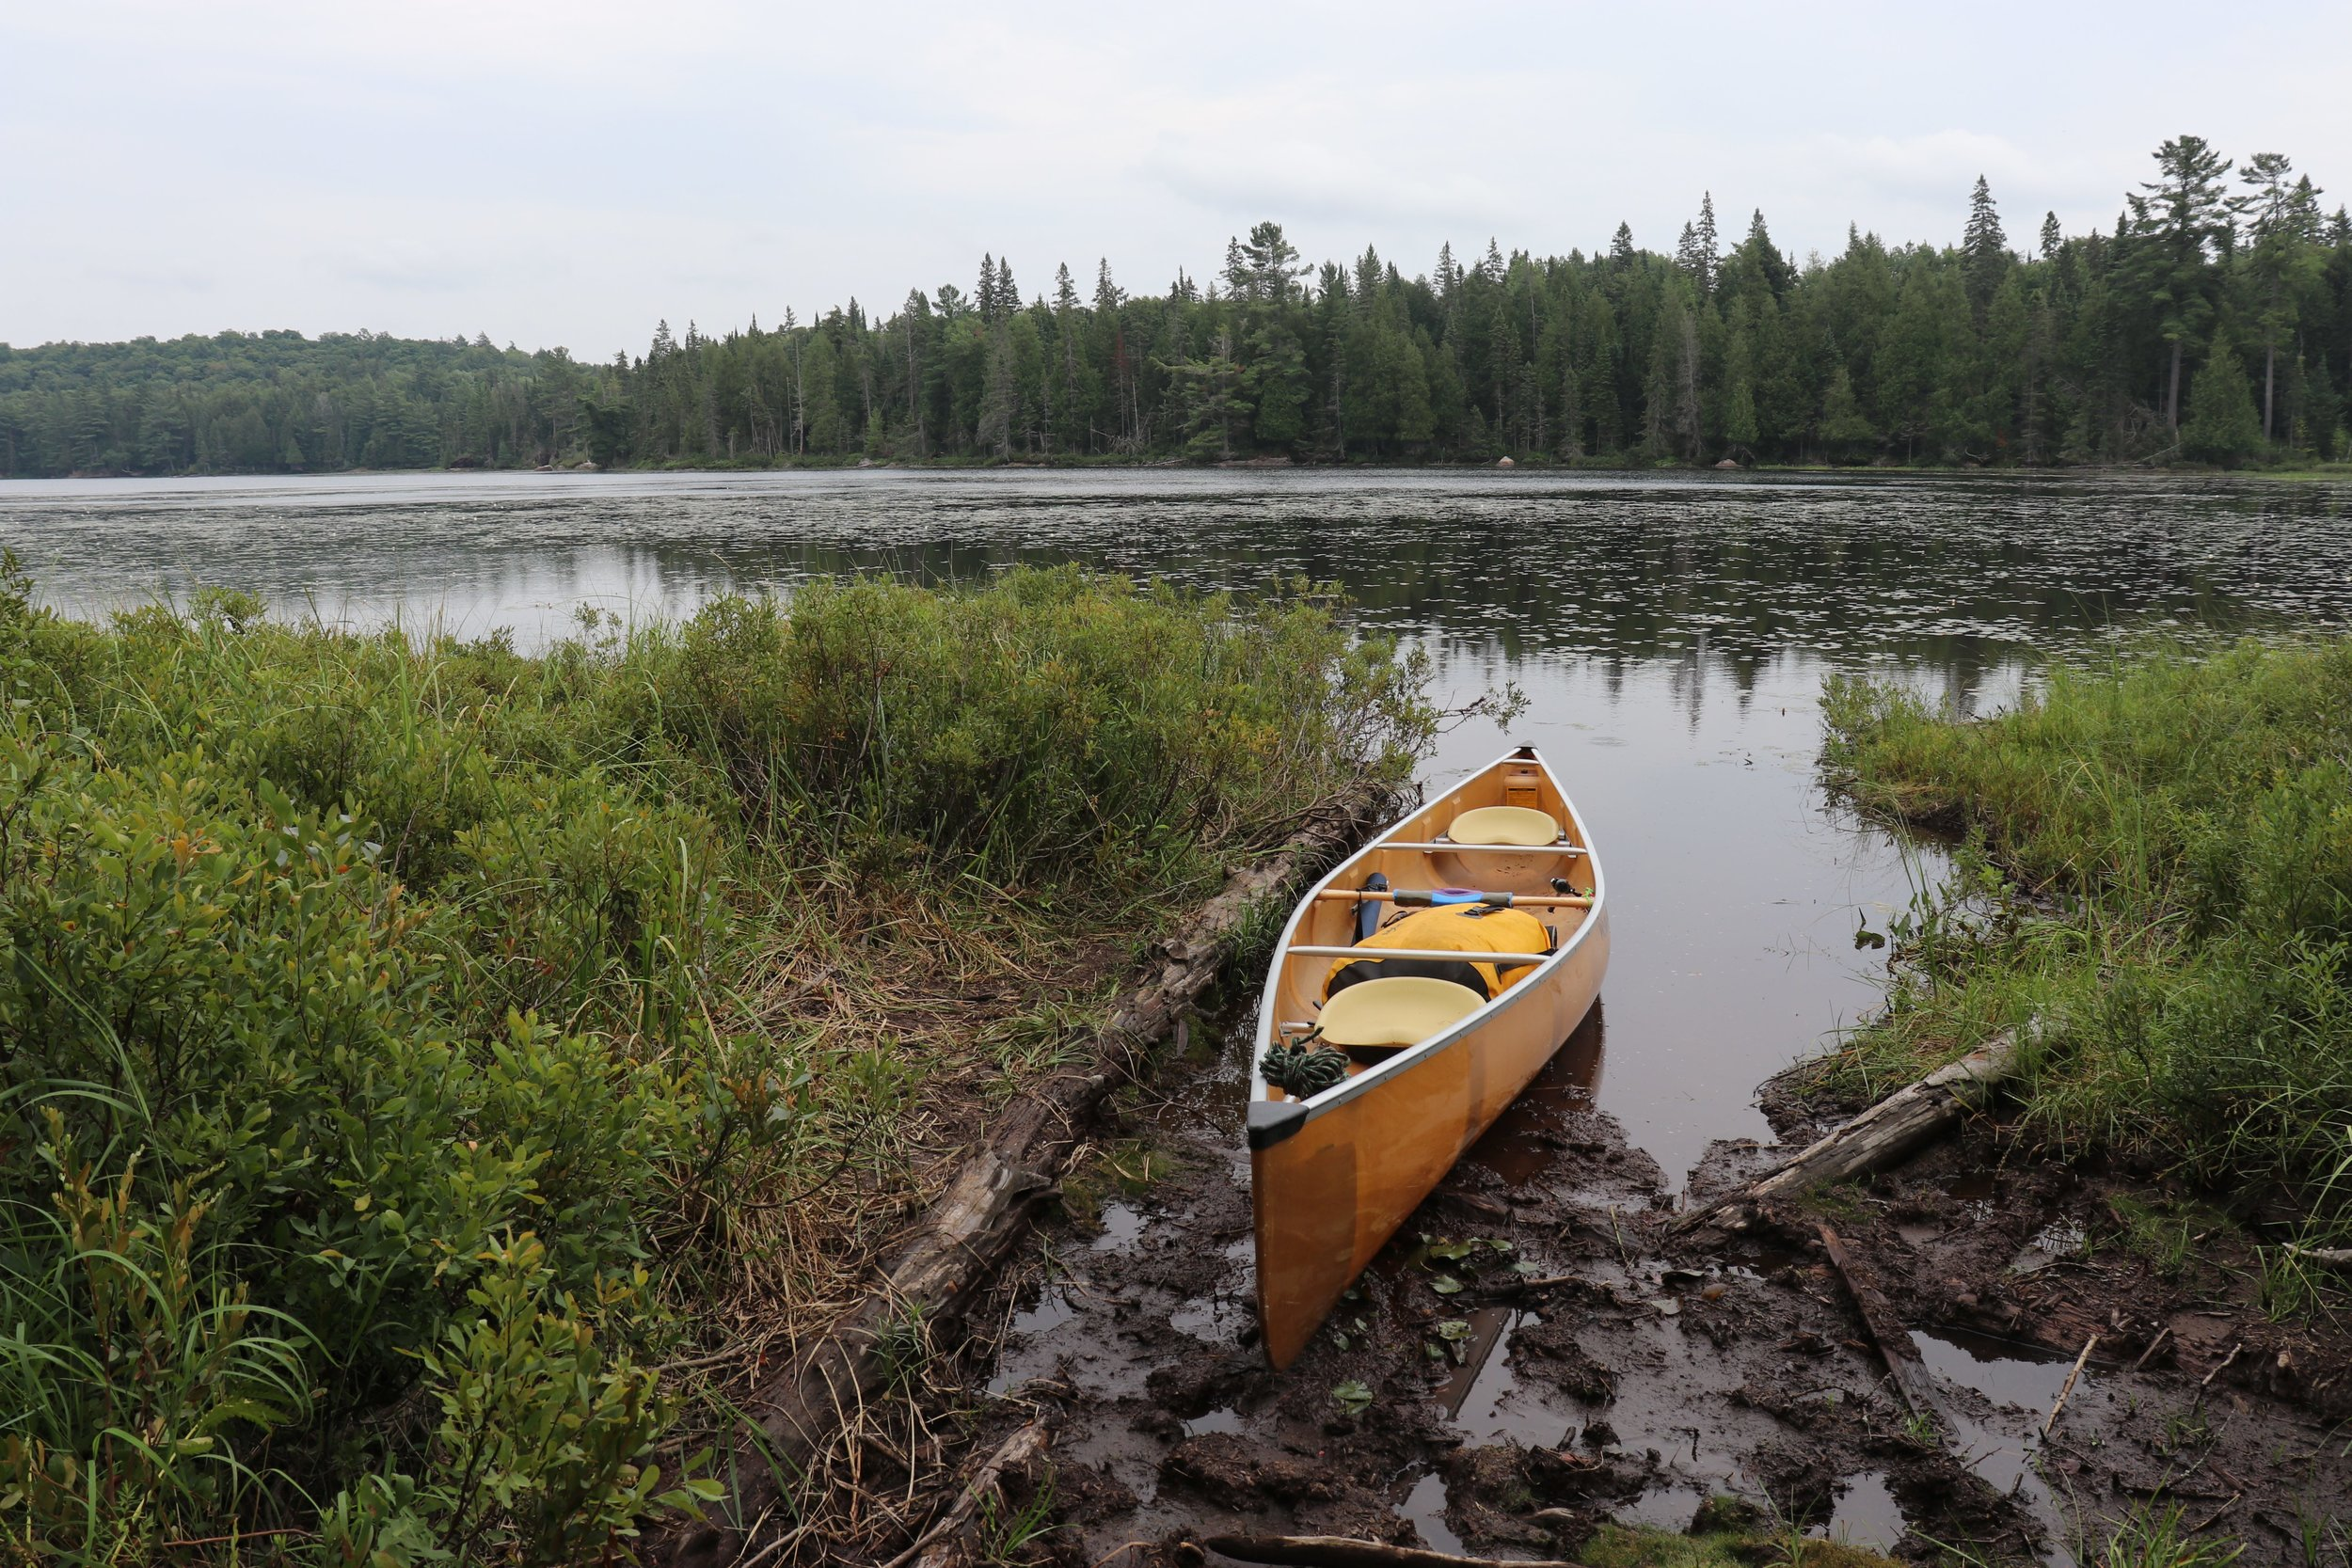 On route to Big Bob Lake, tackling portage number 16 on the day